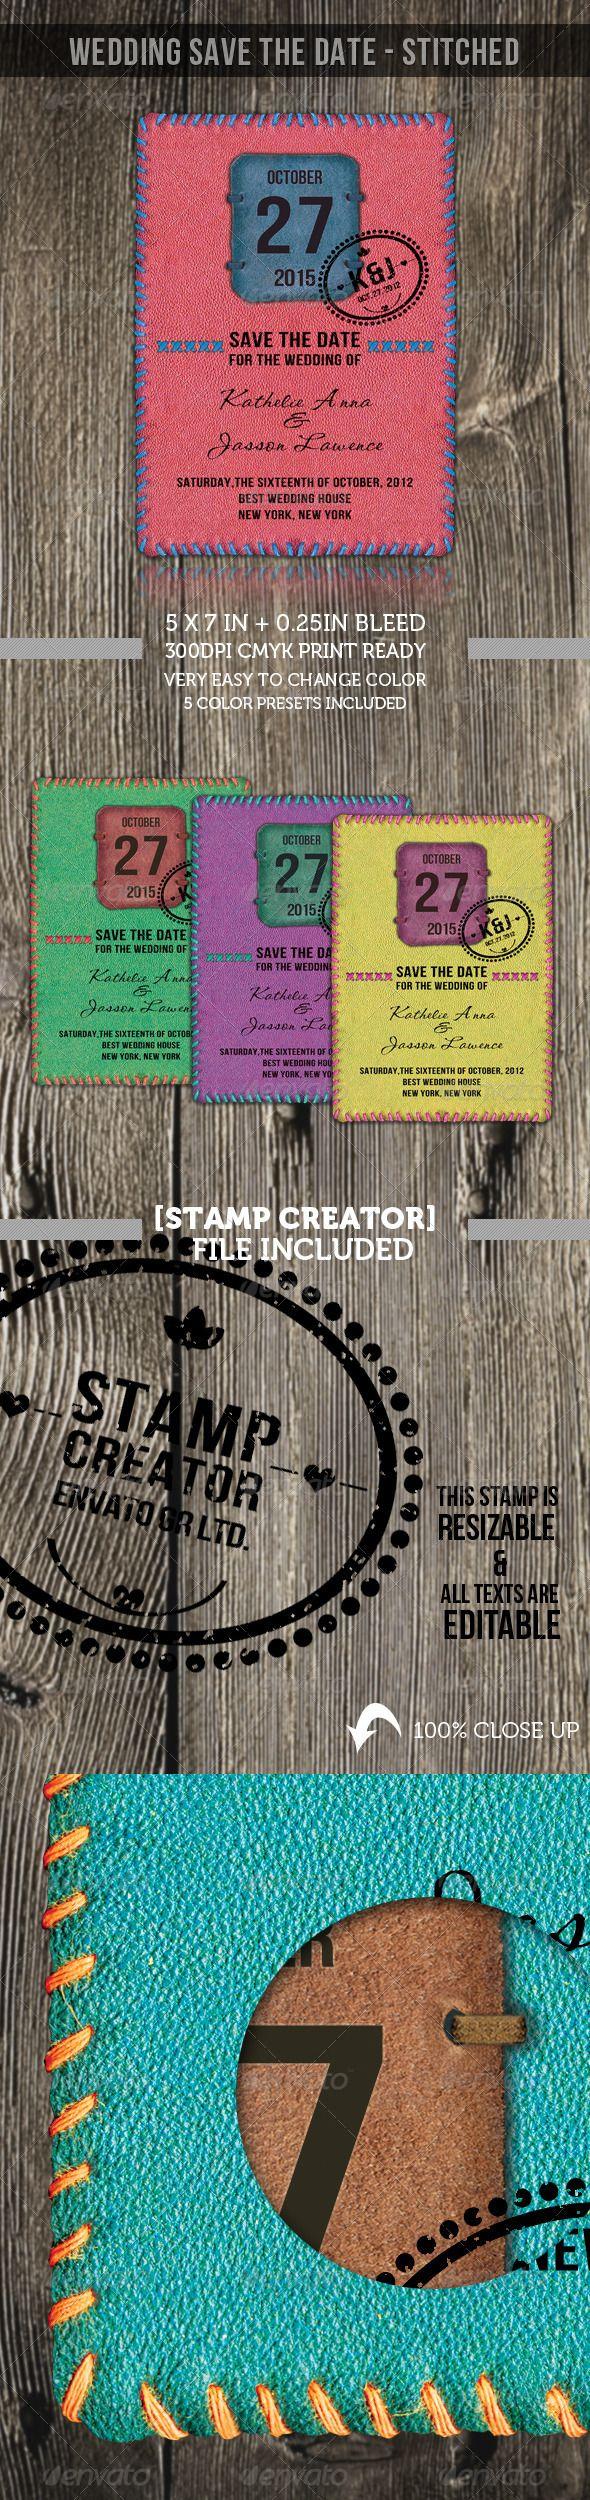 1011 best Wedding Invitation Template Design images – Wedding Save the Date and Invitation Packages